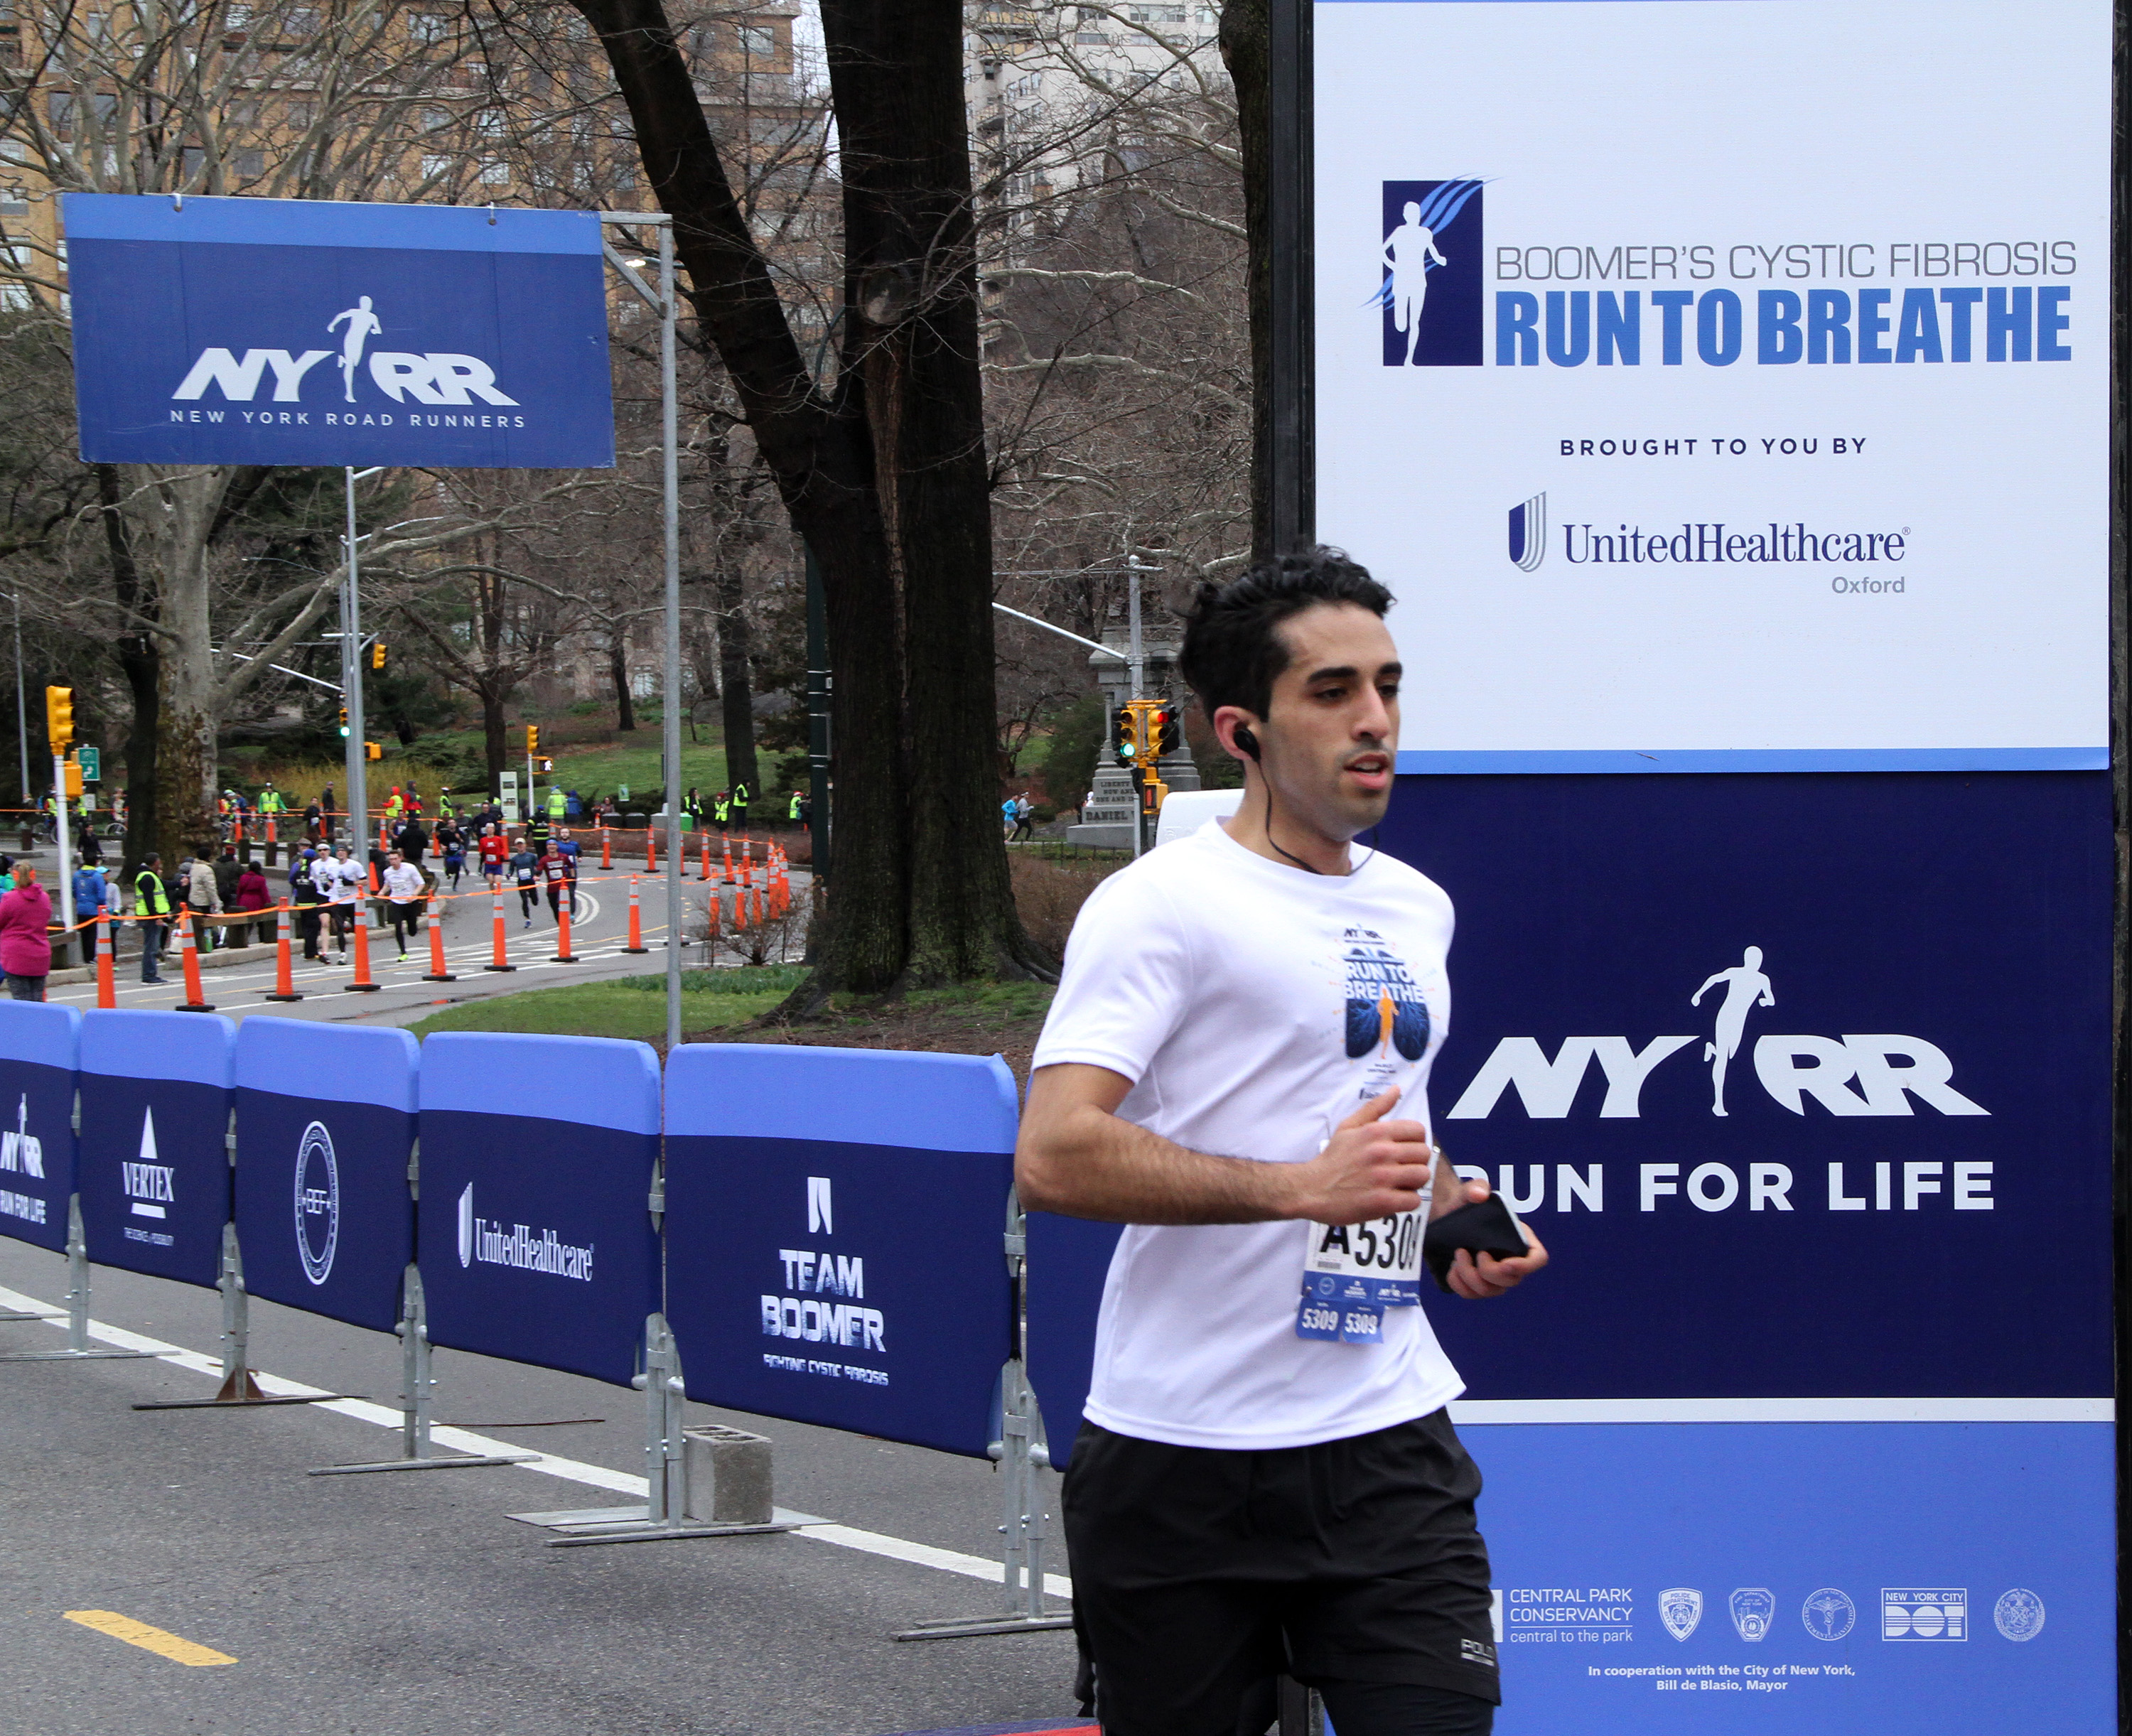 """Race finishers cross the finish line during Boomer's Cystic Fibrosis """"Run To Breathe"""" Charity Event at Central Park Bandshell on April 1, 2017 in New York City. Donna Ward/Getty Images"""